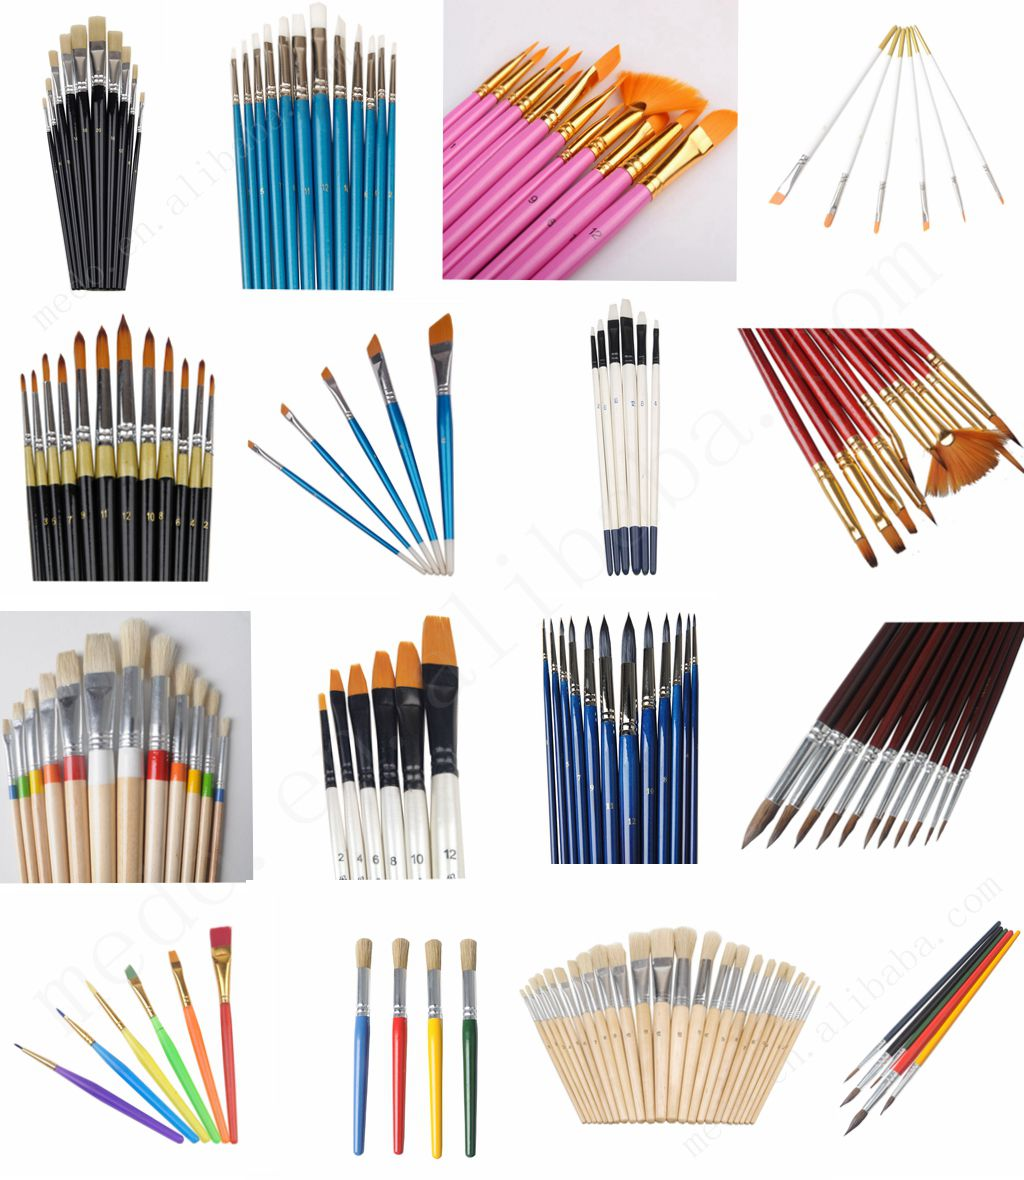 Cheap bristle paint brush for kids short wood handle paint brushes